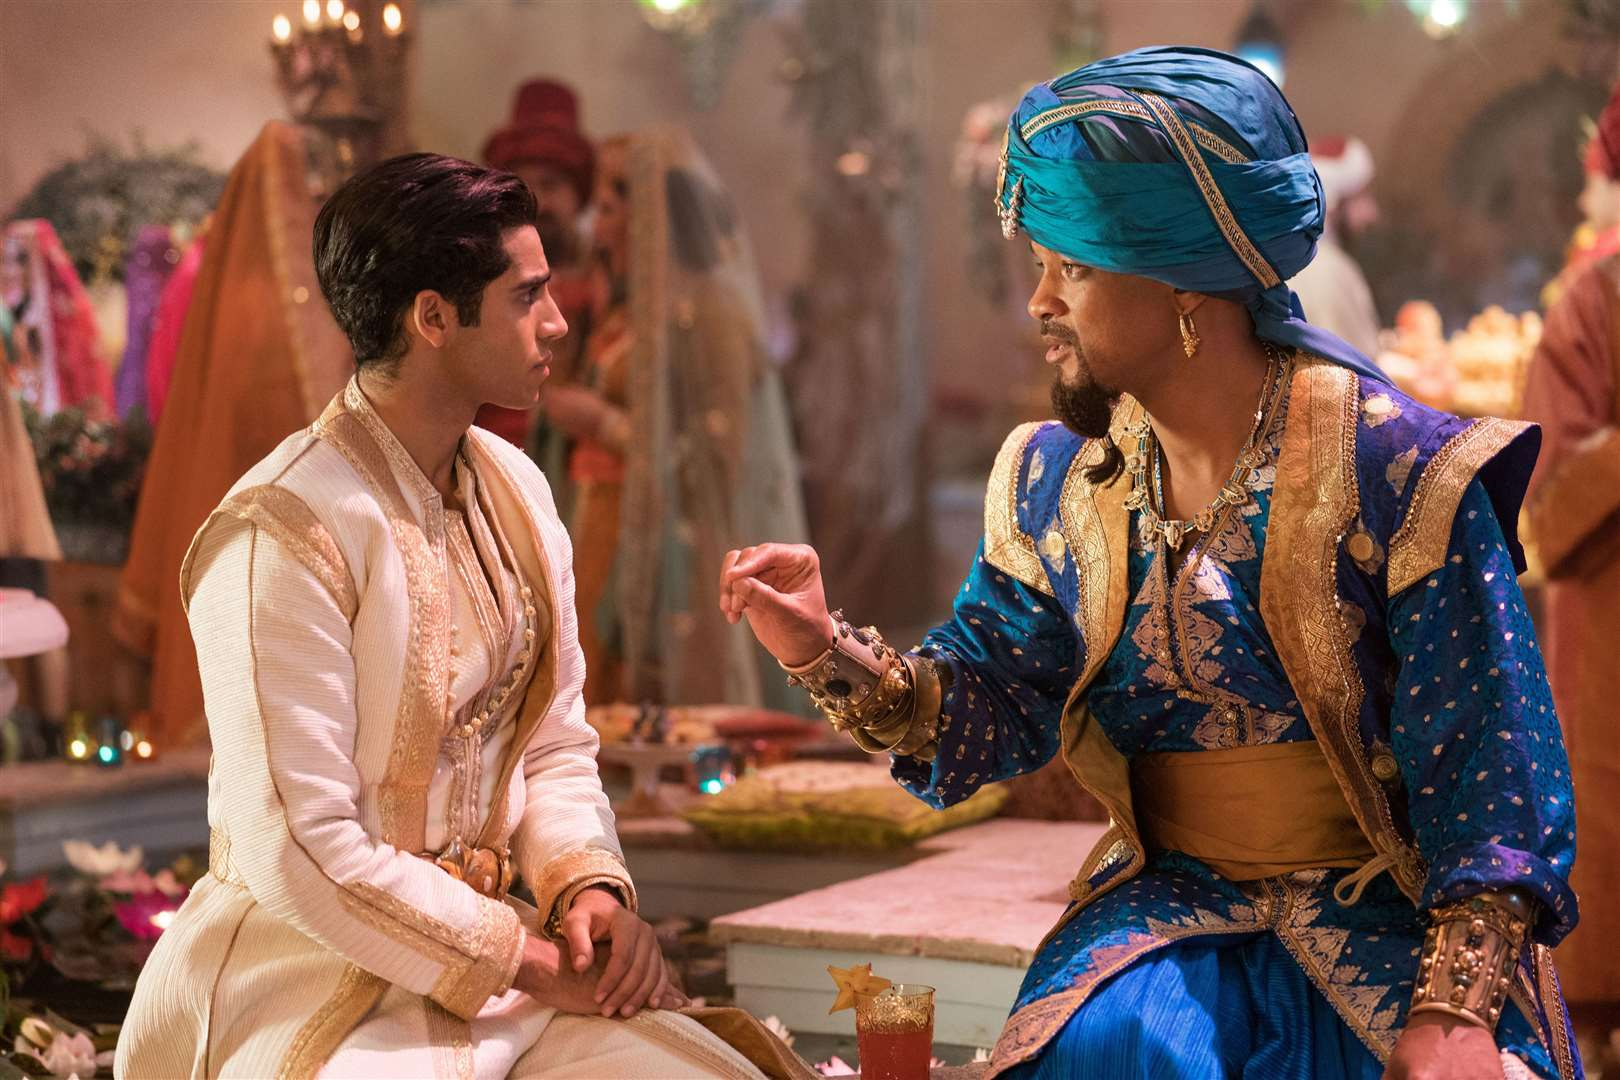 Mena Massoud as Aladdin and Will Smith as Genie. Picture credit: PA Photo/Disney Enterprises, Inc./Daniel Smith.